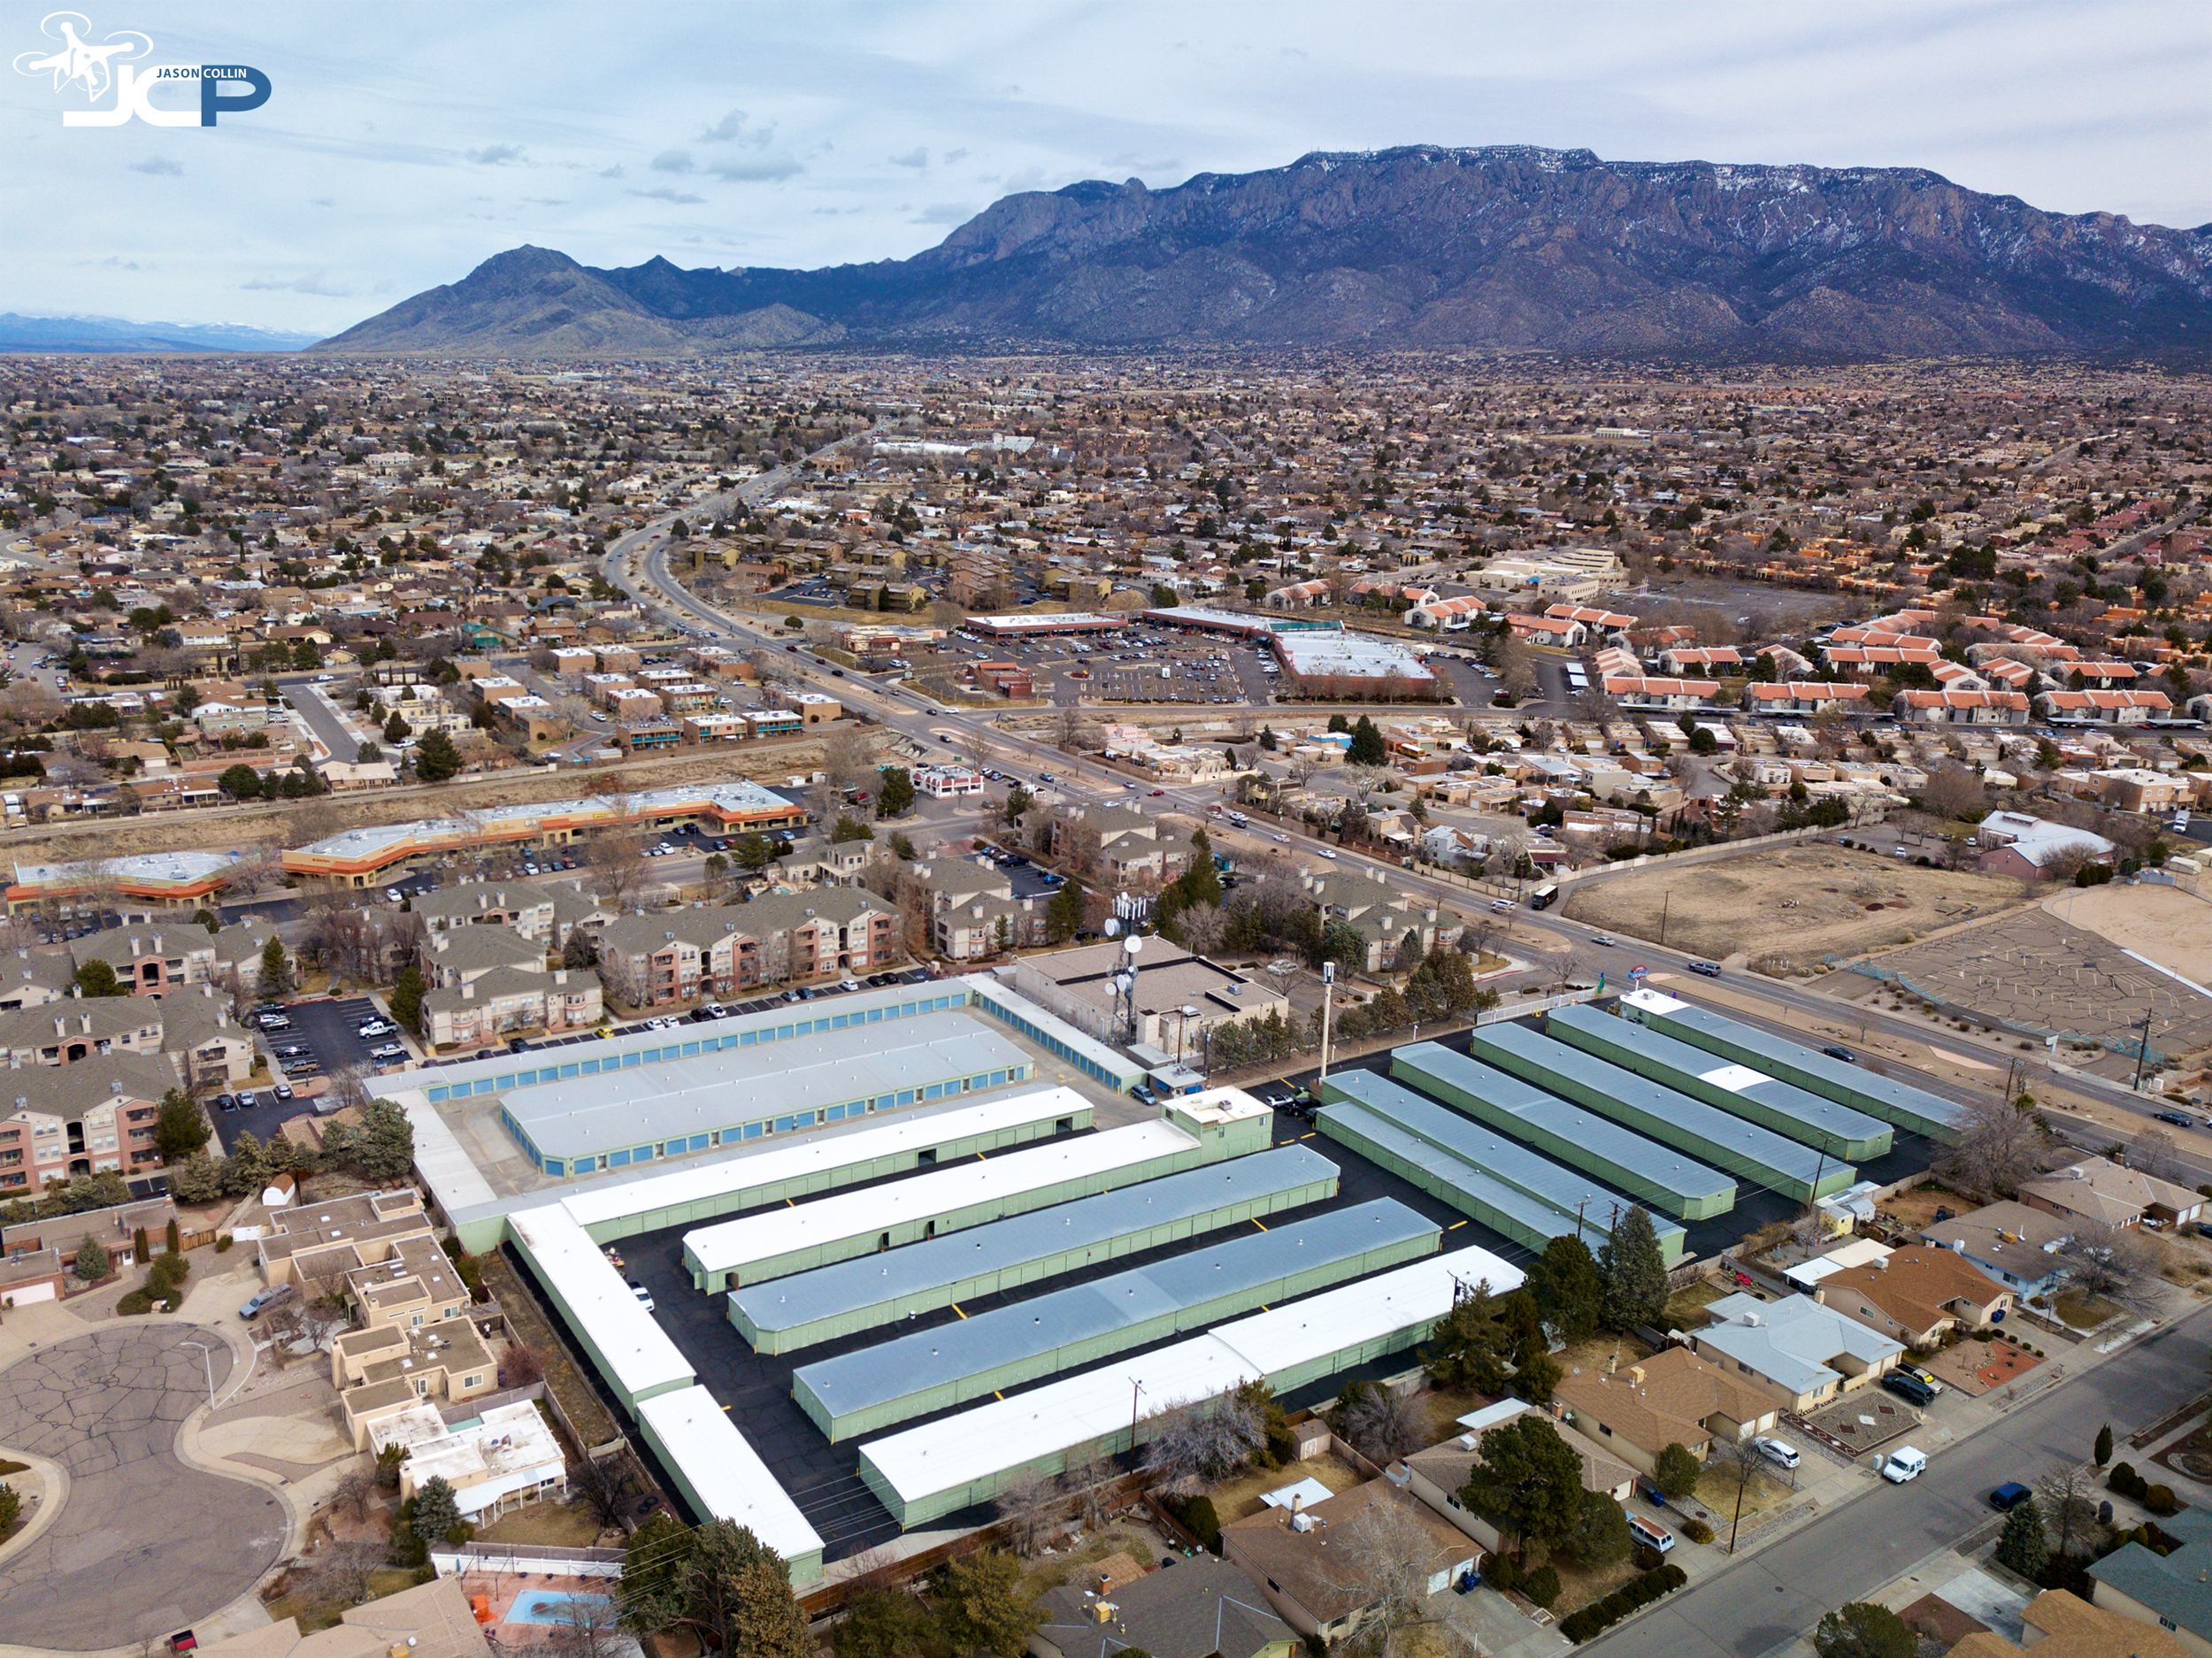 Drone photography can show a large facility in context of its surroundings, like this self storage property in Albuquerque, New Mexico